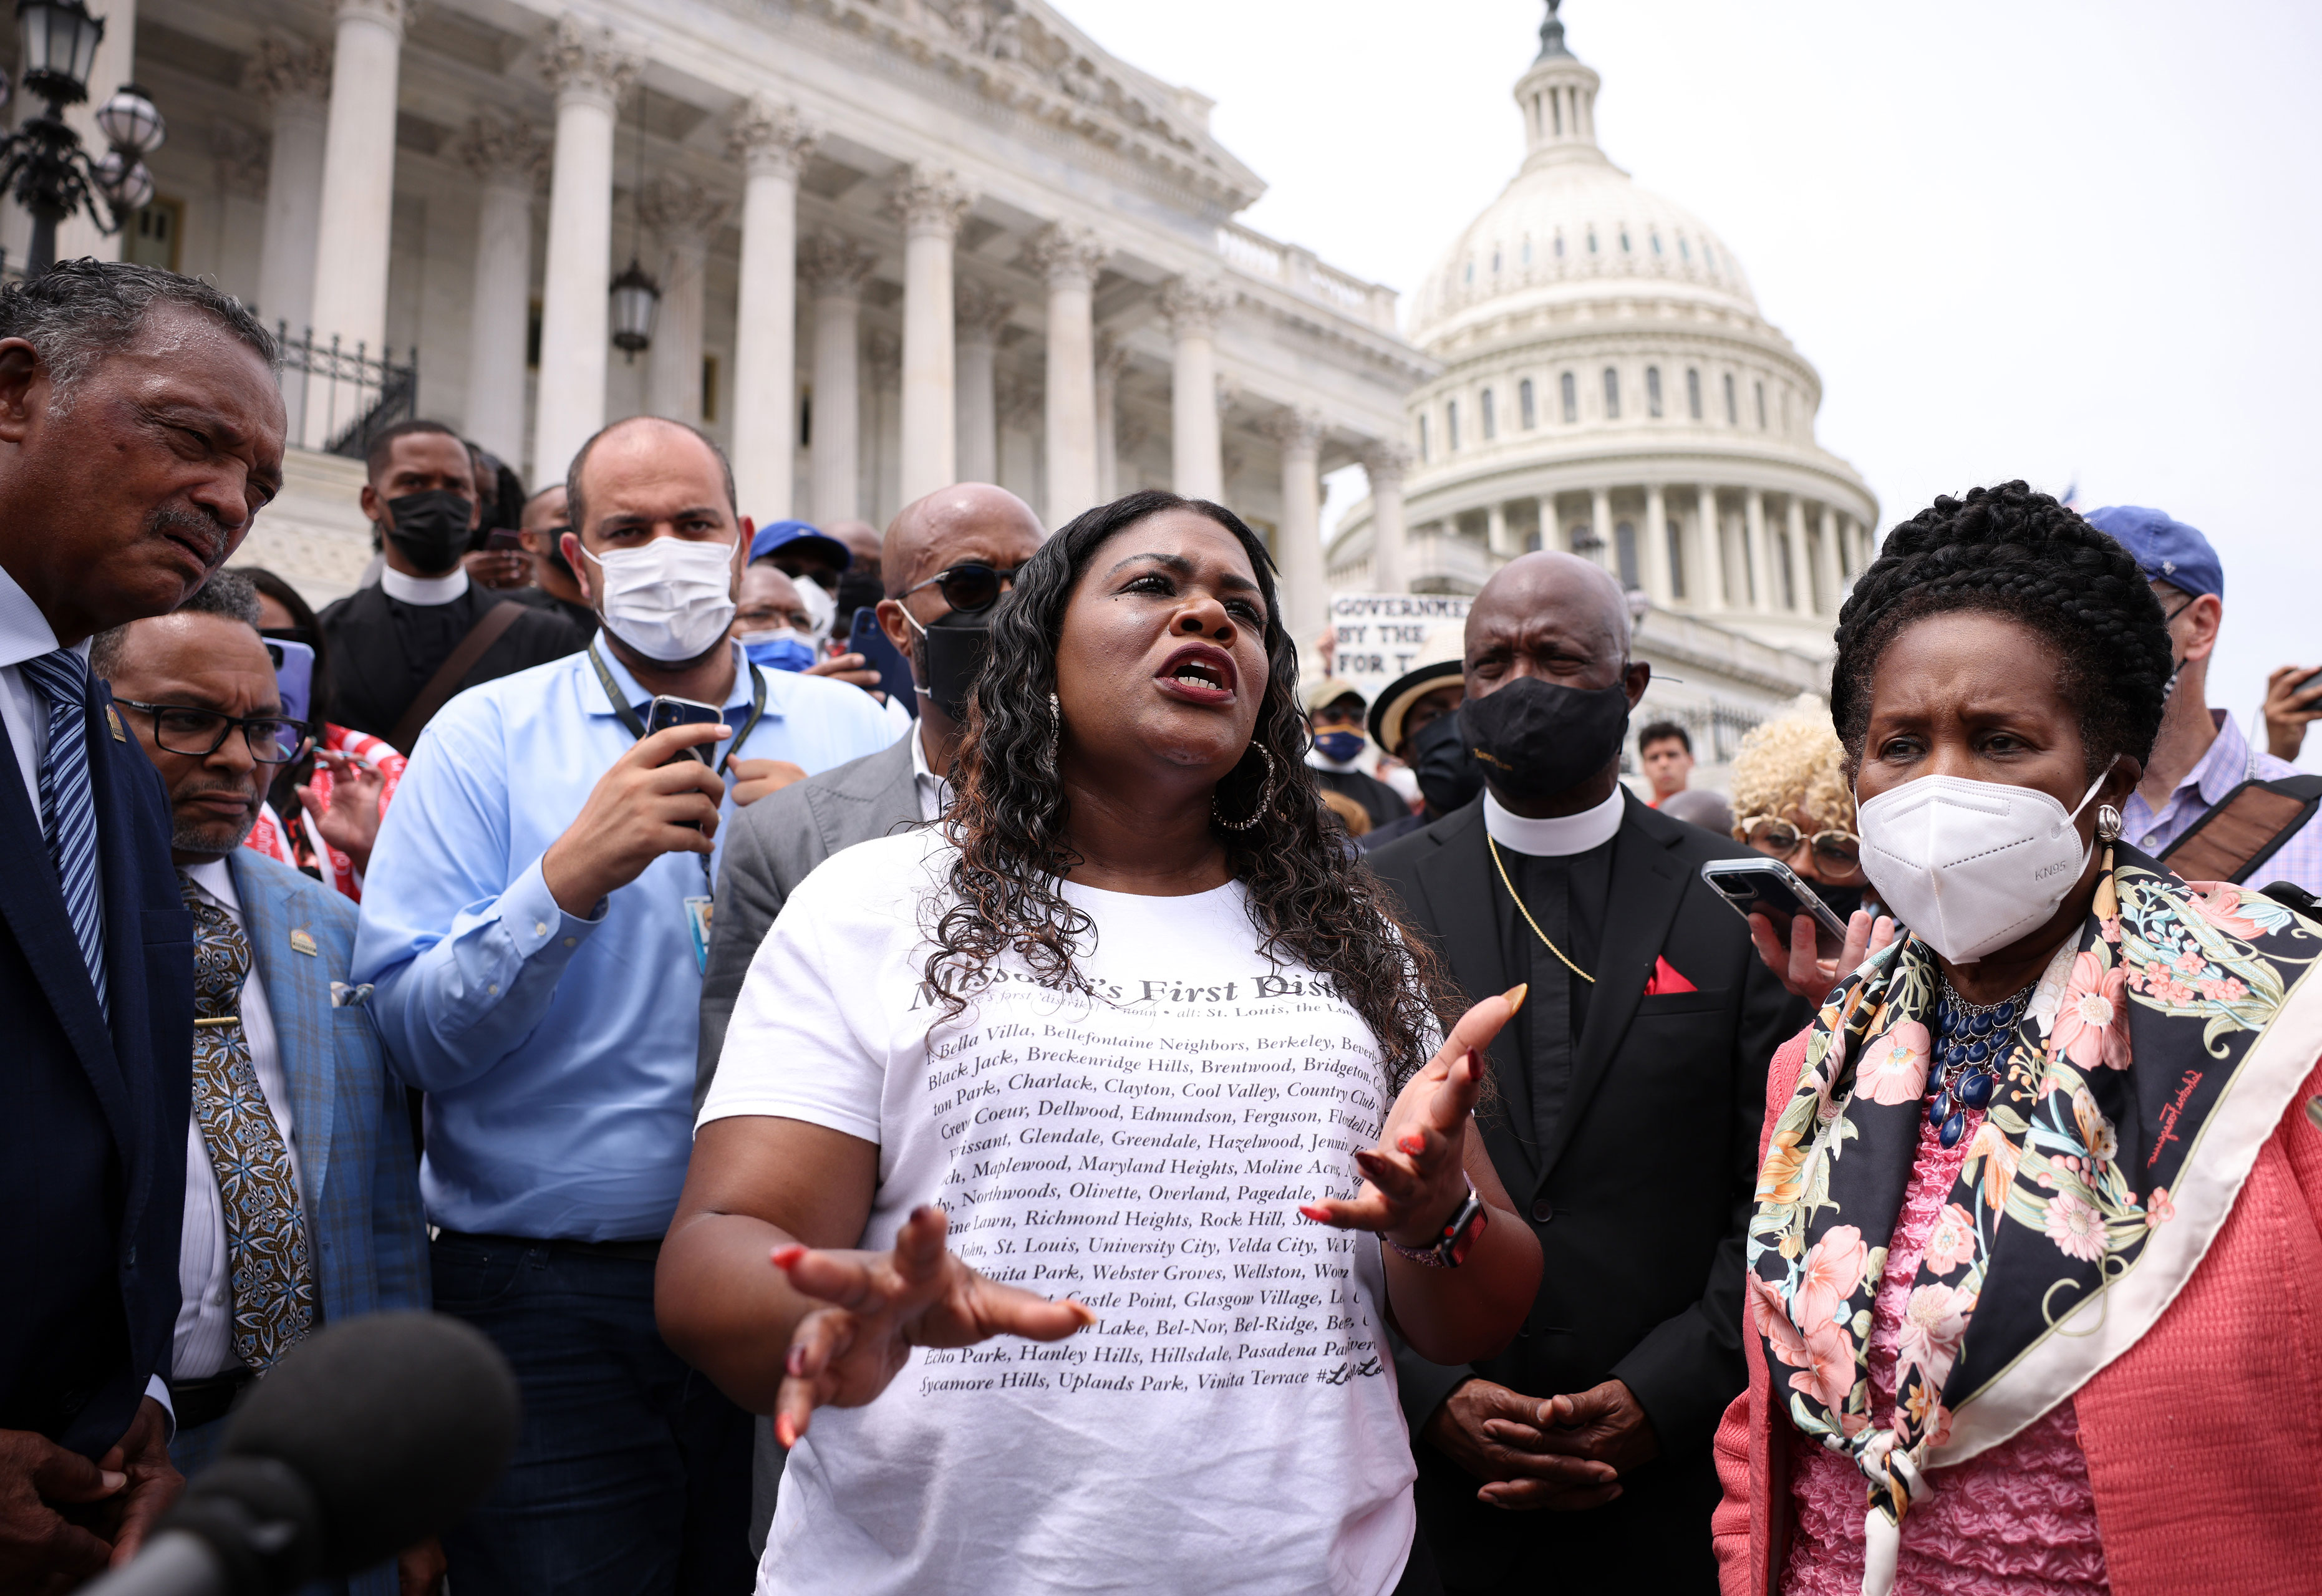 Rep. Cori Bush, center, Rep. Sheila Jackson Lee, right, and civil rights activist Jesse Jackson speak at a rally against the end of the eviction moratorium at the U.S. Capitol on Tuesday, August 3.